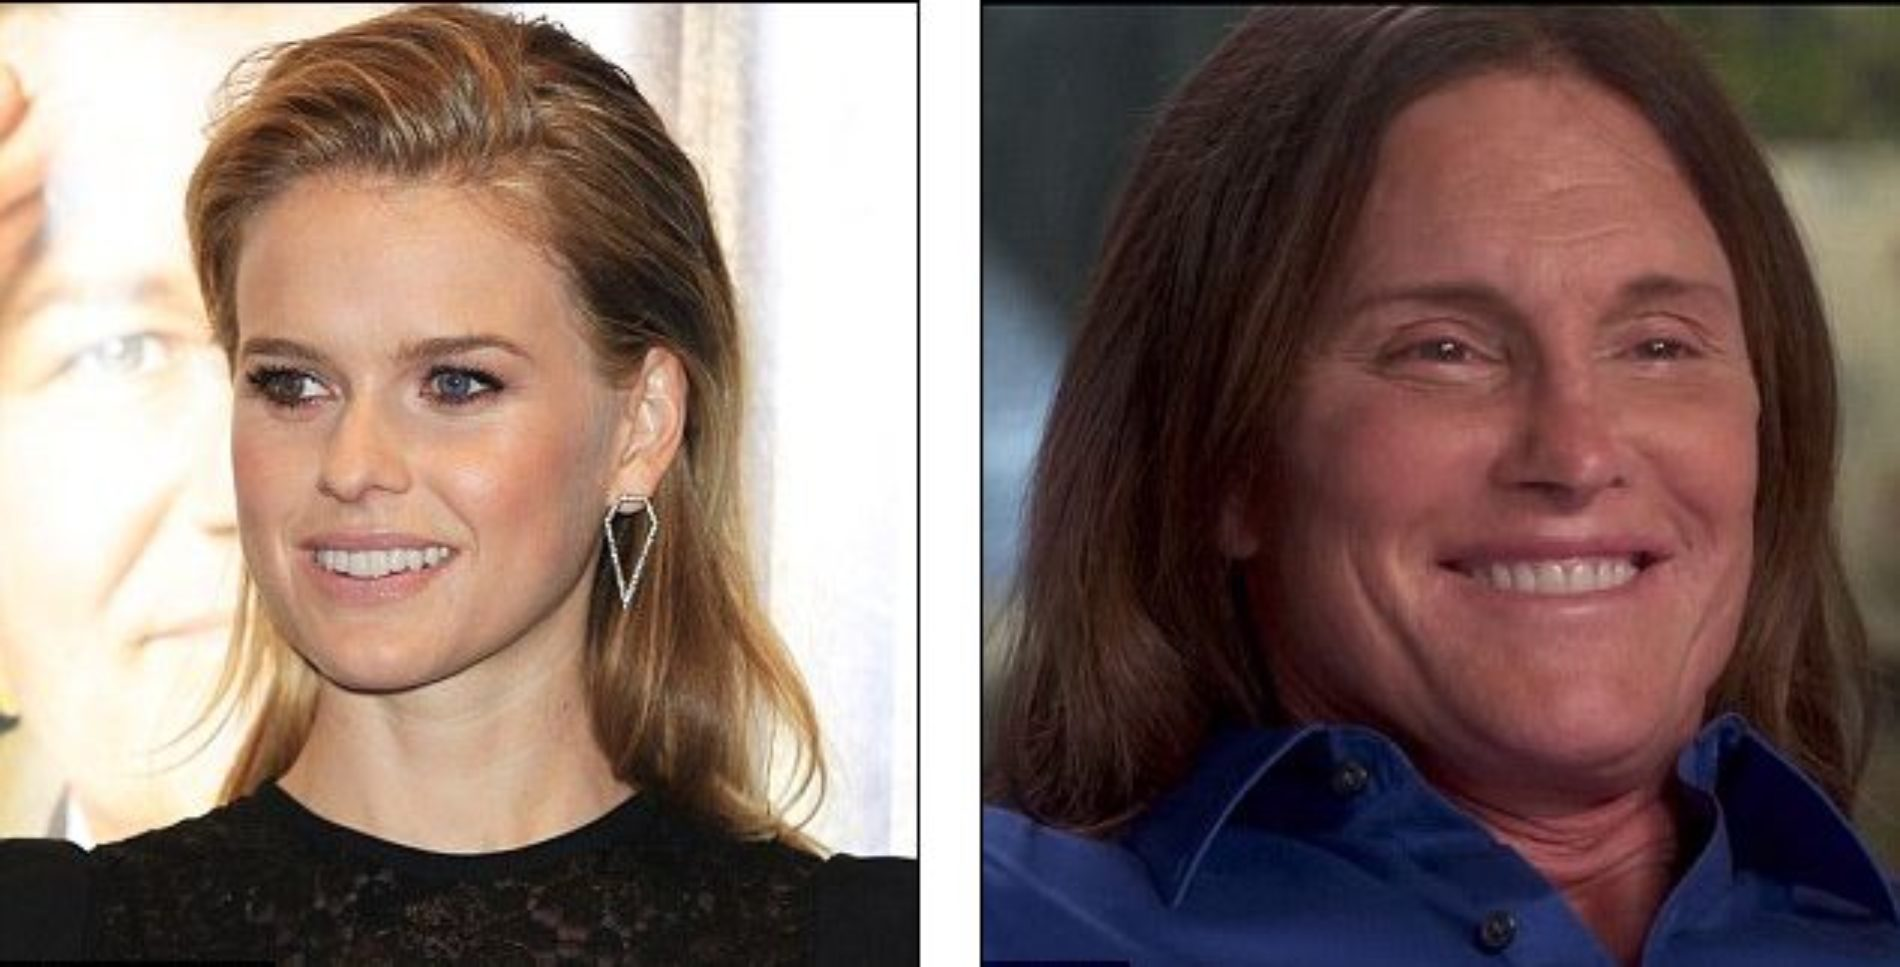 Actress Alice Eve branded a bigot over rant against Bruce Jenner